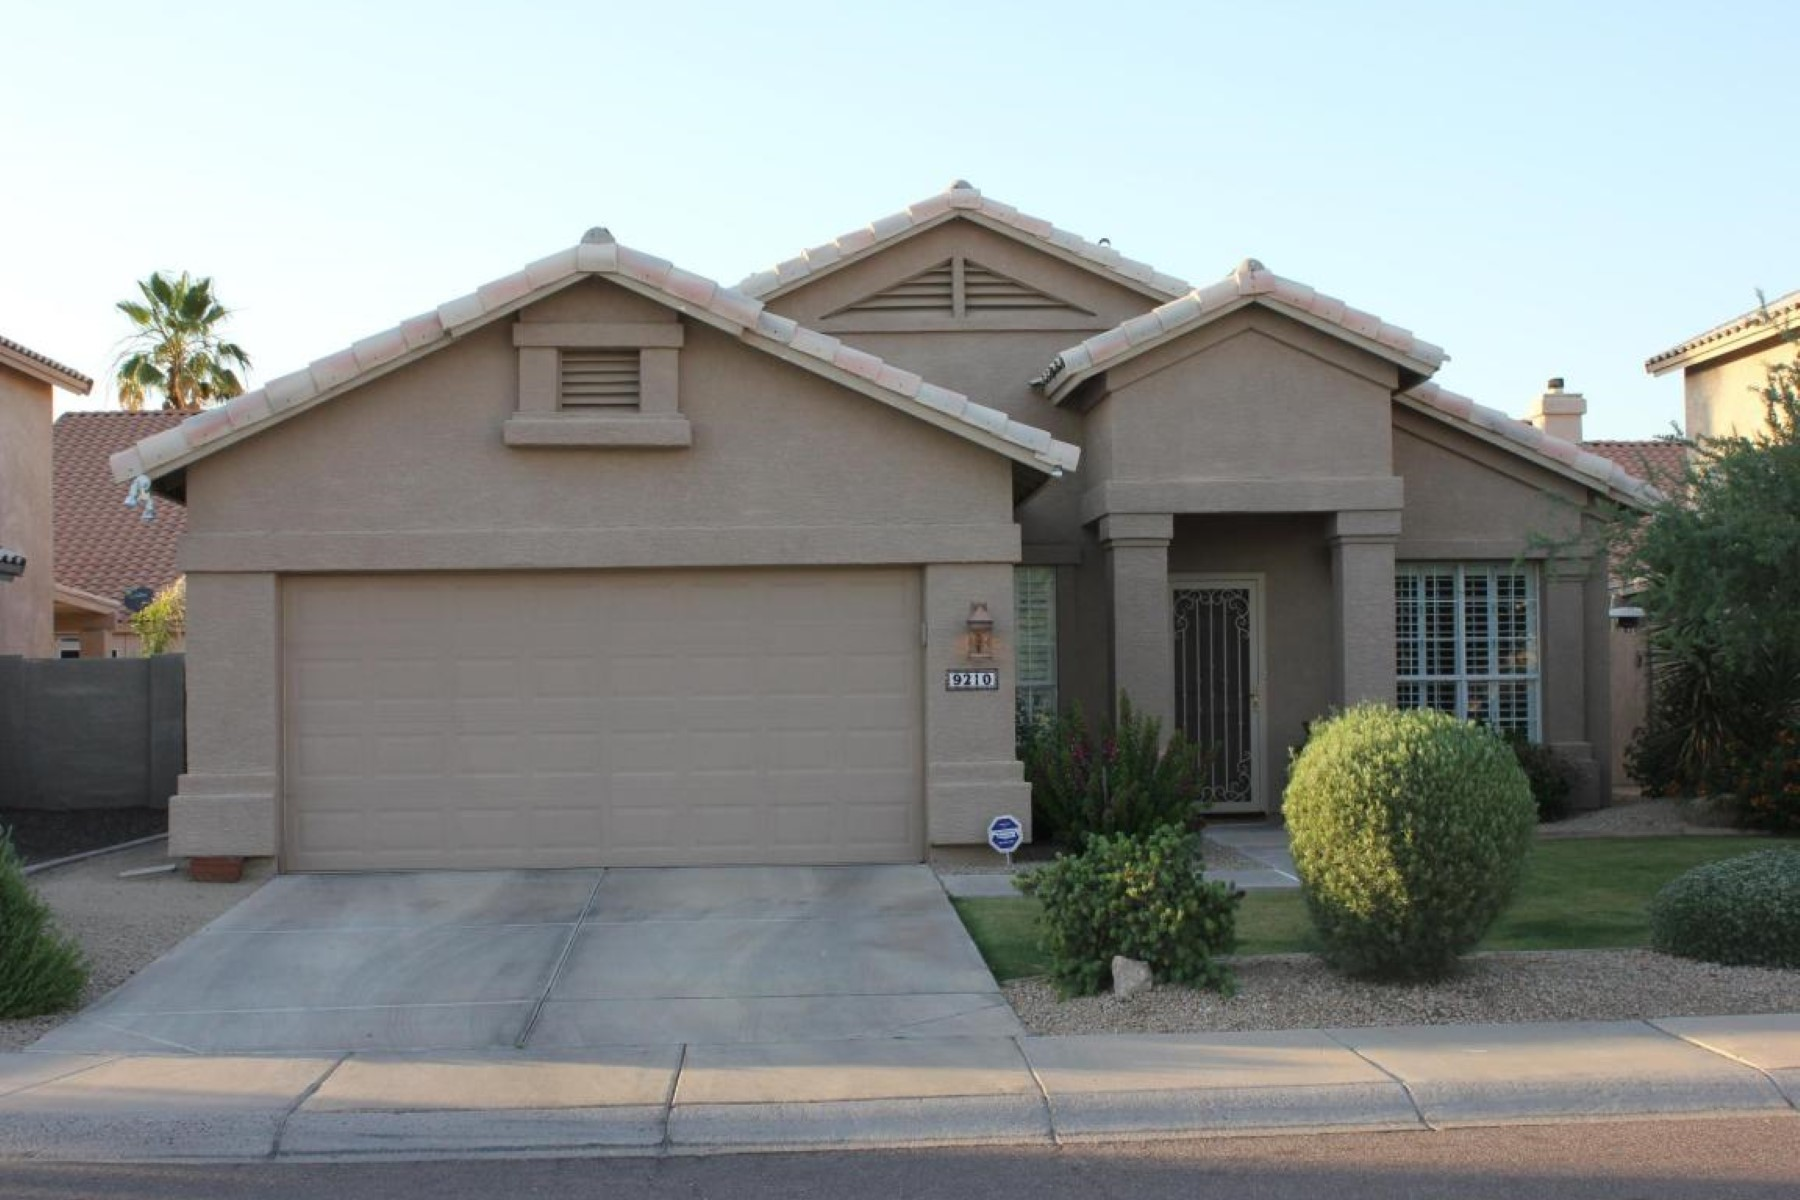 獨棟家庭住宅 為 出售 在 Nicely updated three bed two bath home 9210 E PERSHING AVE Scottsdale, 亞利桑那州 85260 美國